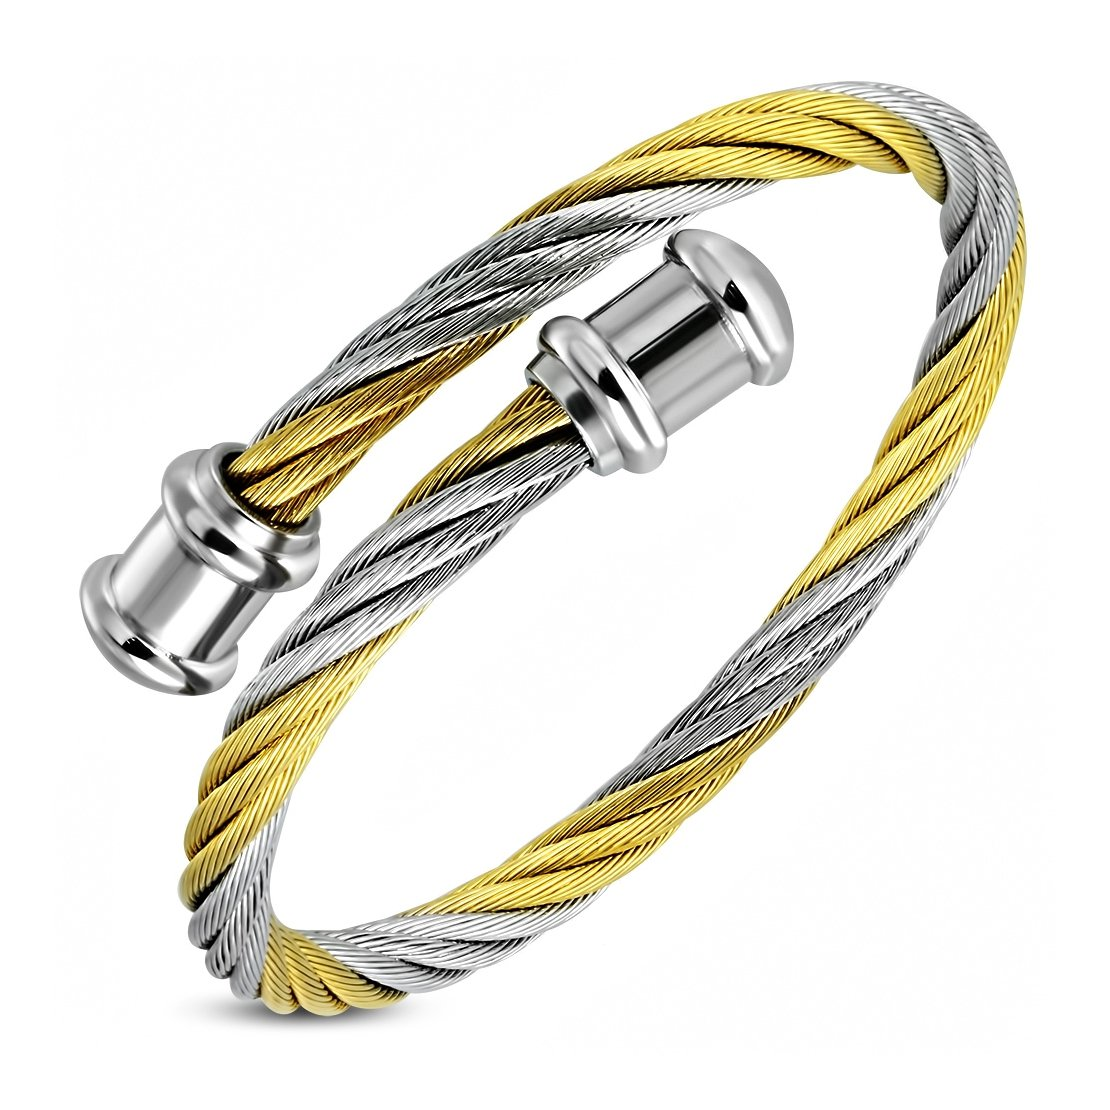 8.8 Stainless Steel 2 Color Celtic Twisted Wire Cable Tube Torc Cuff Bangle Length